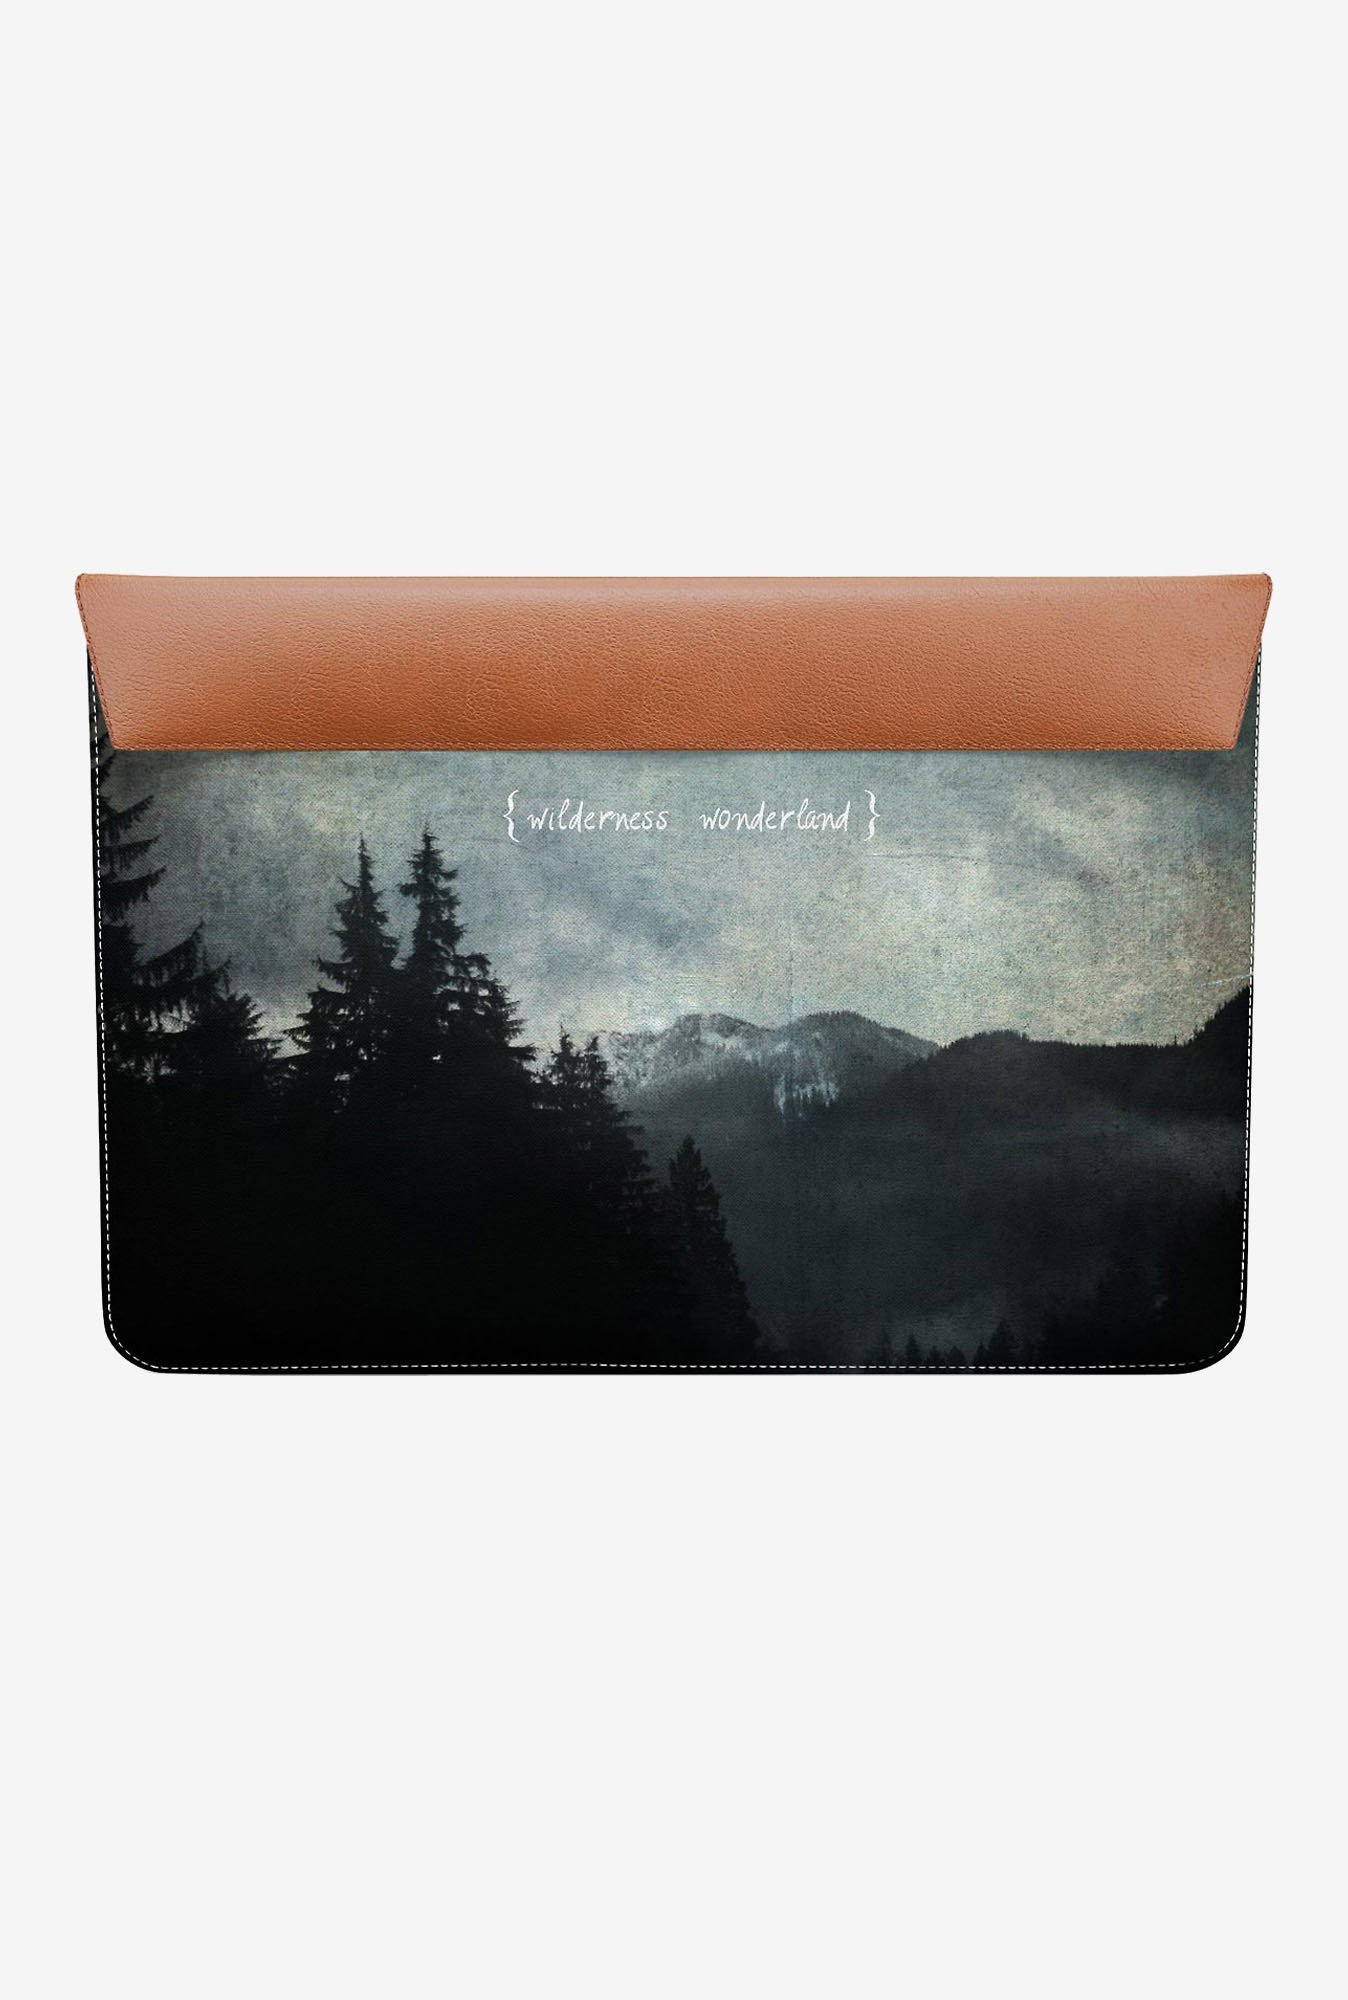 DailyObjects Wonderland MacBook Air 13 Envelope Sleeve